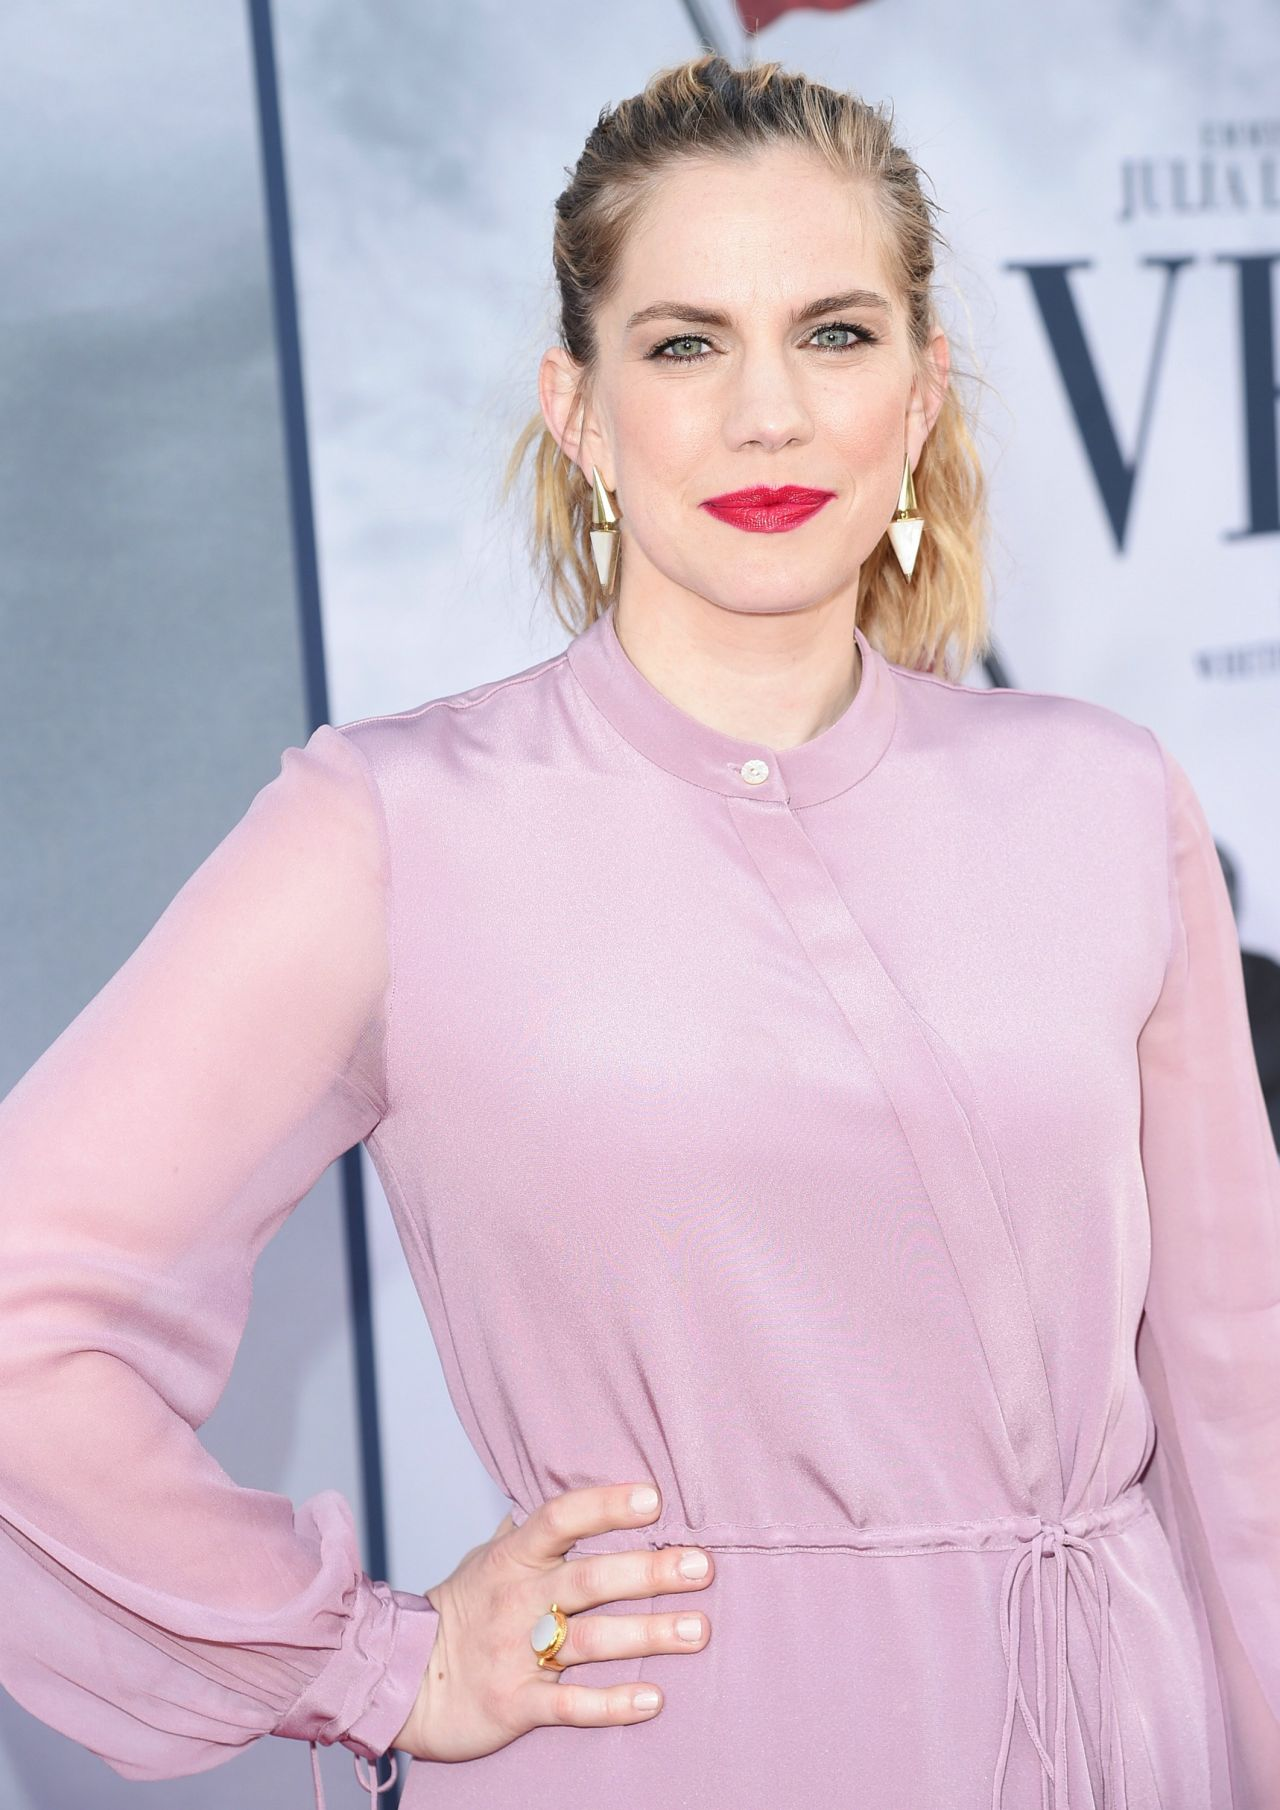 Anna Chlumsky At Veep Tv Show Fyc Screening 05 25 2017